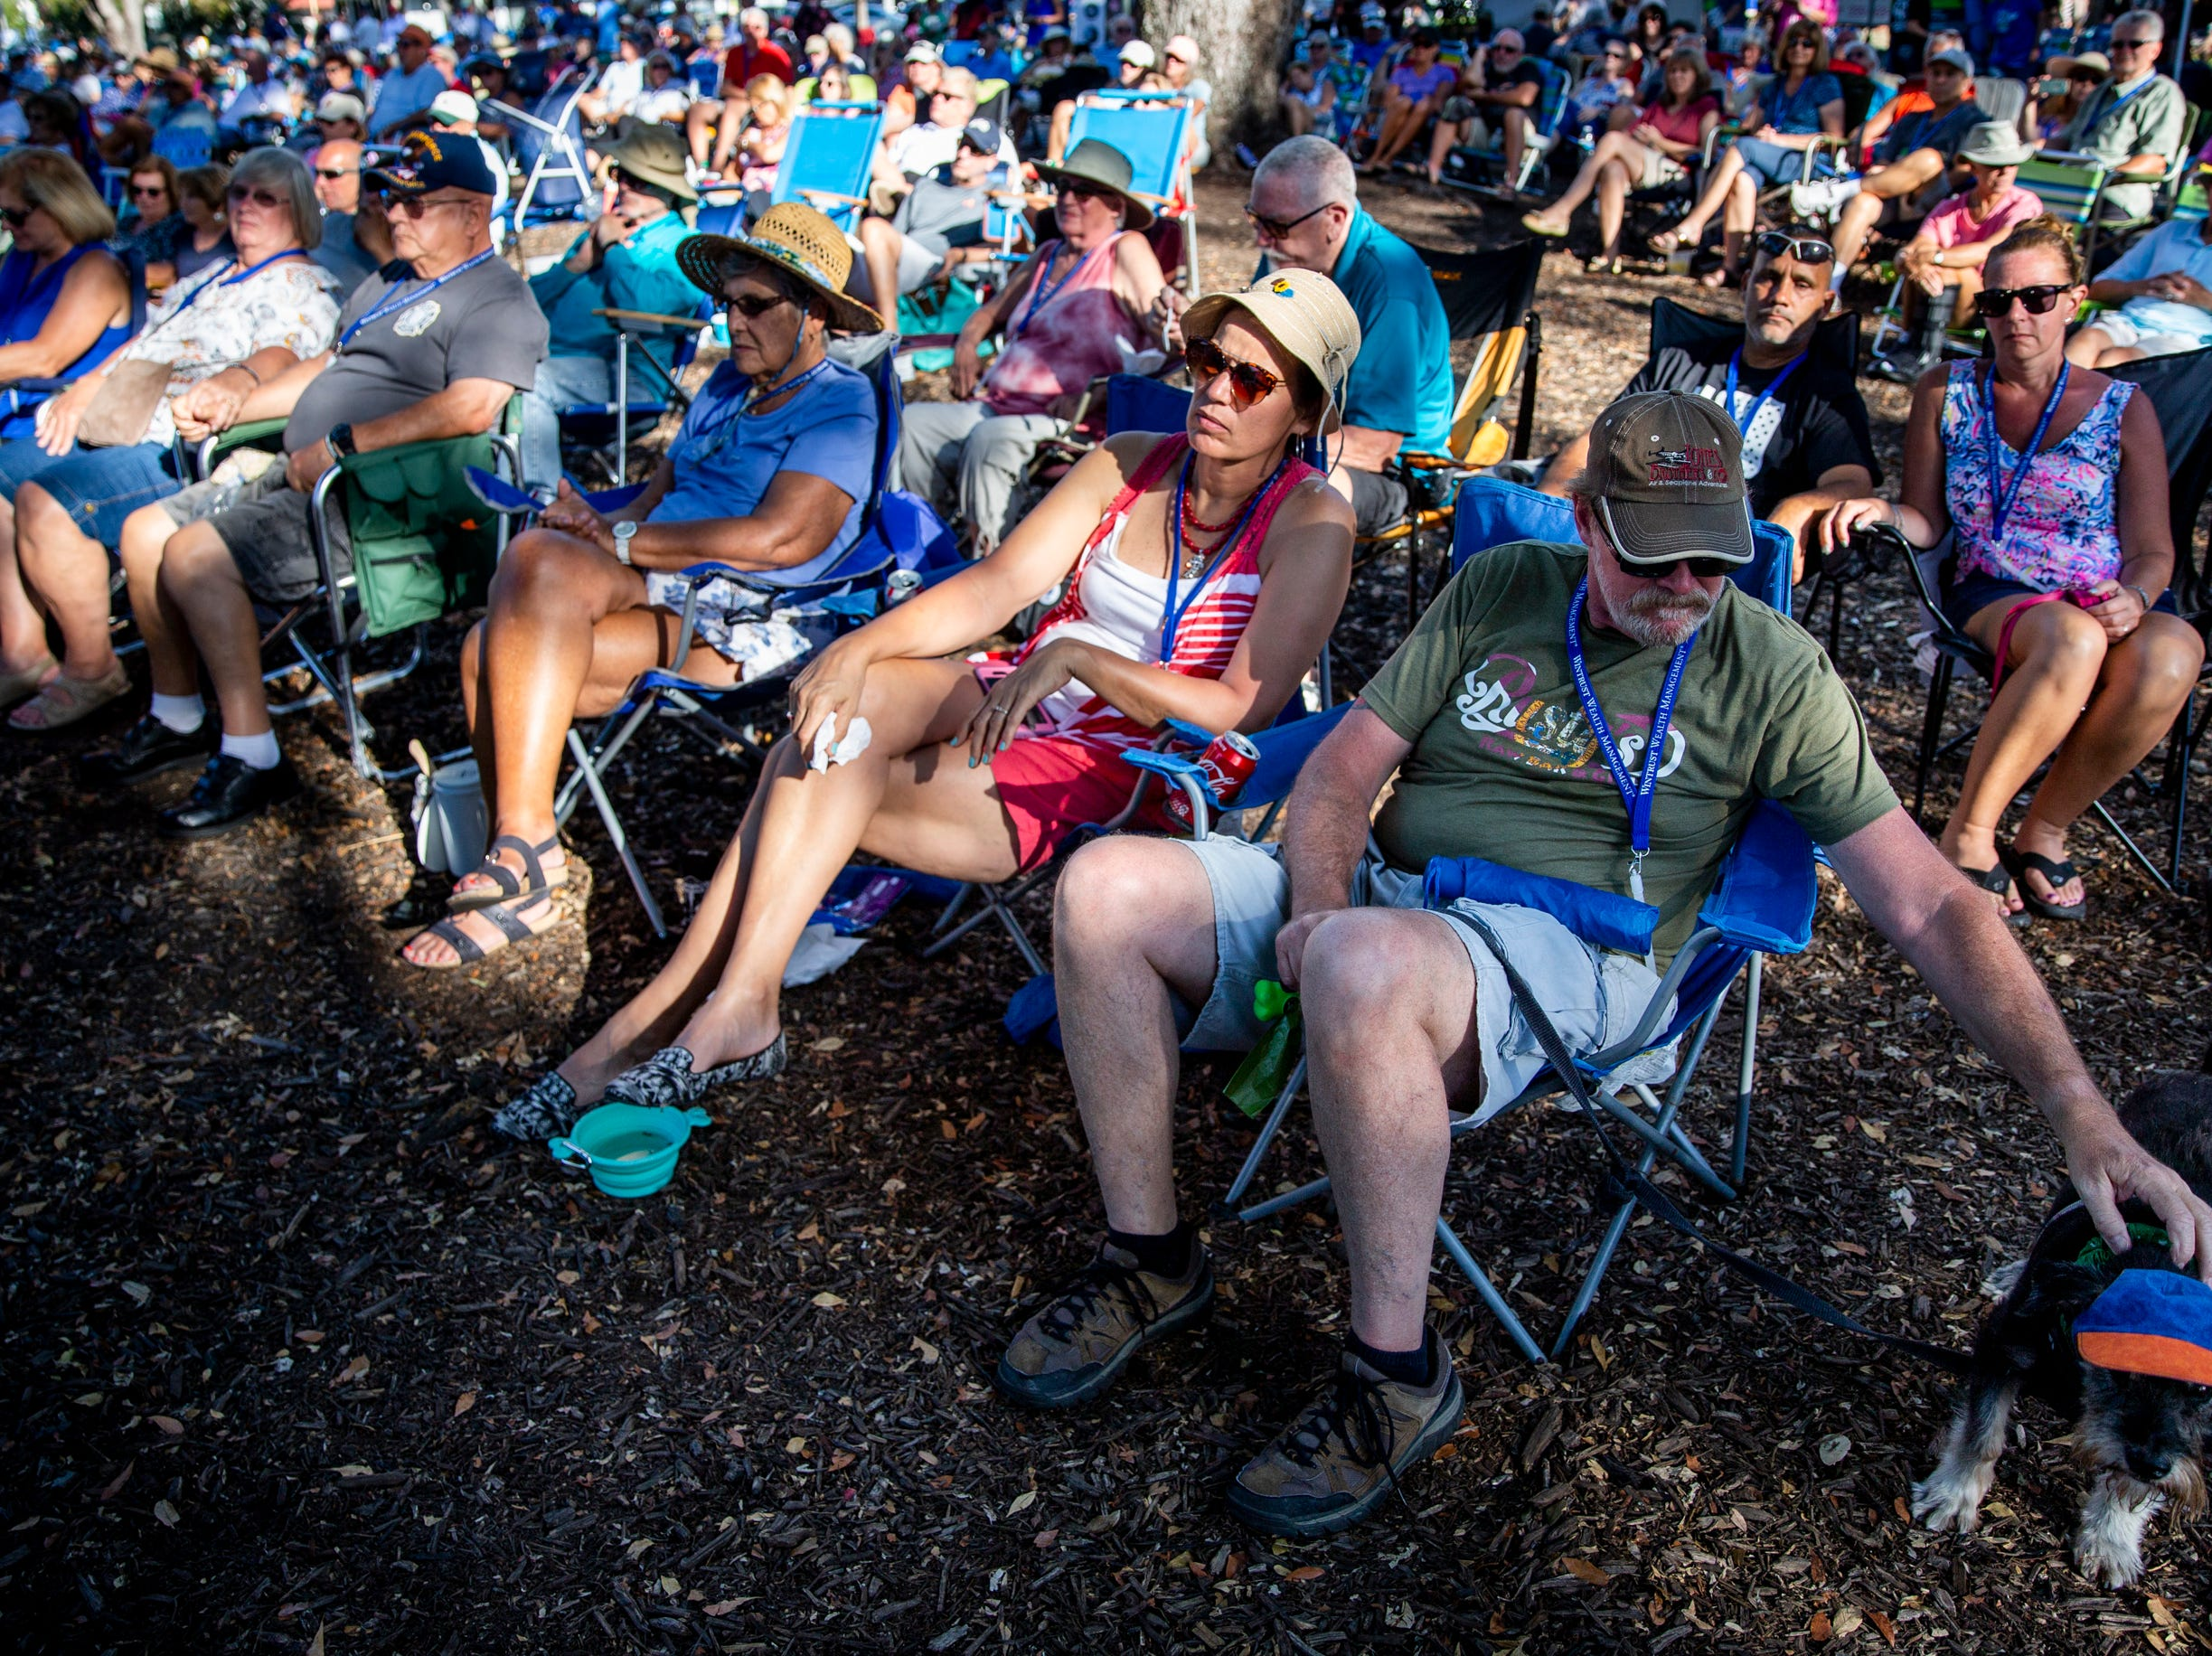 Bob Gresham pets his dog, Jack, while he listens to a performance with his wife, Nancy Gresham, and her mother, Connie Schrader, during the first annual Blues for the Blue, a benefit concert raising funds for The Fallen Officers and The Robert L. Zore Foundation, at Cambier Park in Naples on Sunday, March 31, 2019.